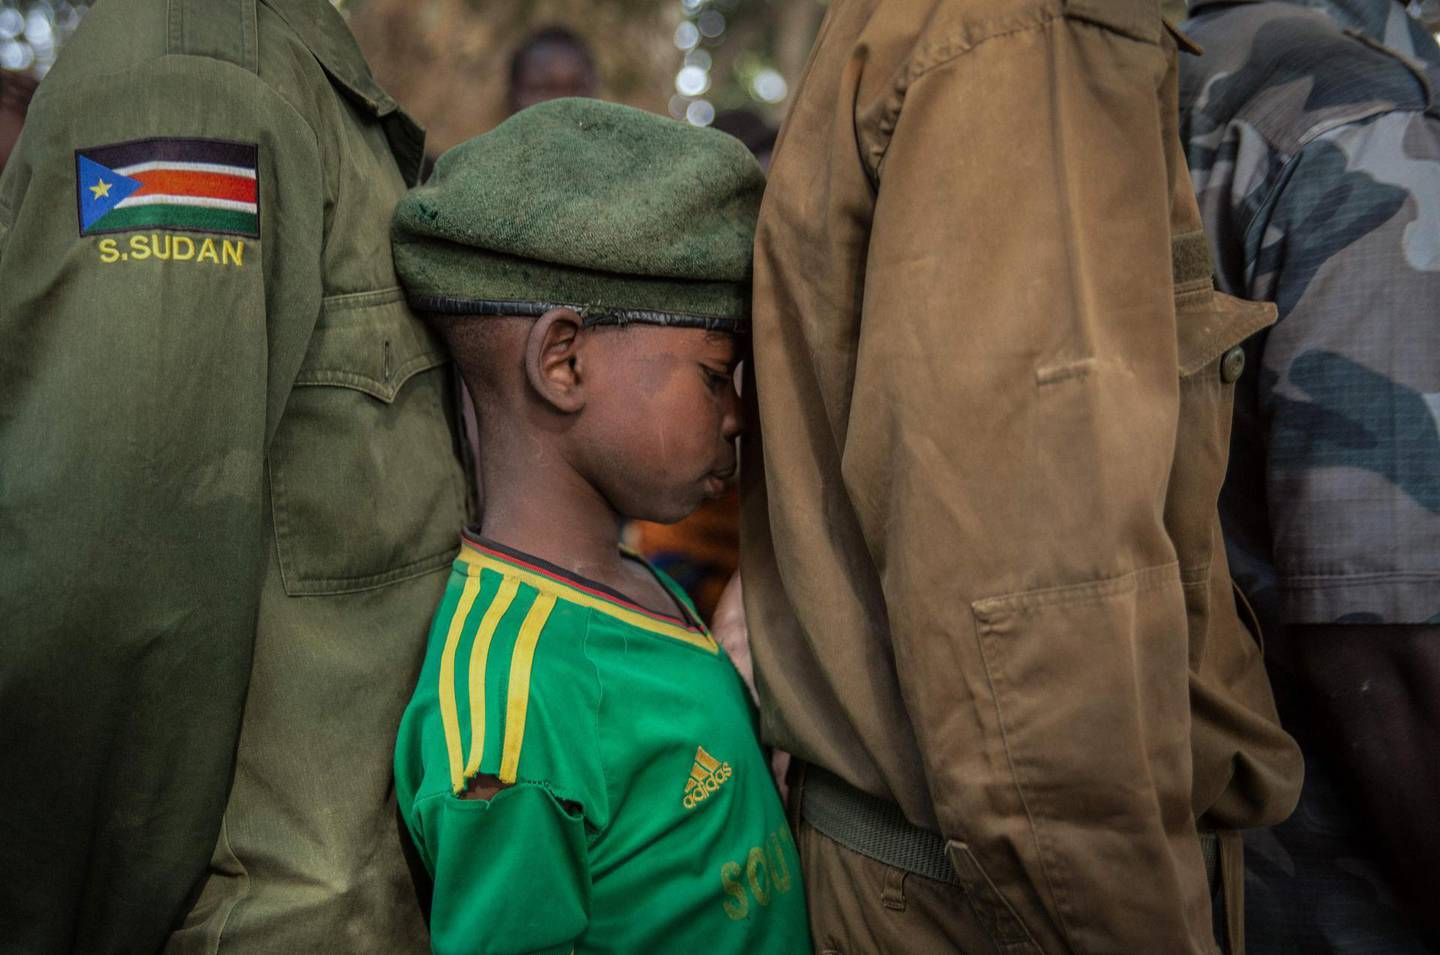 -- AFP PICTURES OF THE YEAR 2018 --  Newly released child soldiers wait in a line for their registration during the release ceremony in Yambio, South Sudan, on February 7, 2018. More than 300 child soldiers, including 87 girls, have been released in South Sudan's war-torn region of Yambio under a programme to help reintegrate them into society, the UN said on on Februar y 7, 2018. A conflict erupted in South Sudan little more than two years after gained independence from Sudan in 2011, causing tens of thousands of deaths and uprooting nearly four million people. The integration programme in Yambio, which is located in the south of the country, aims at helping 700 child soldiers return to normal life. -   / AFP / Stefanie Glinski